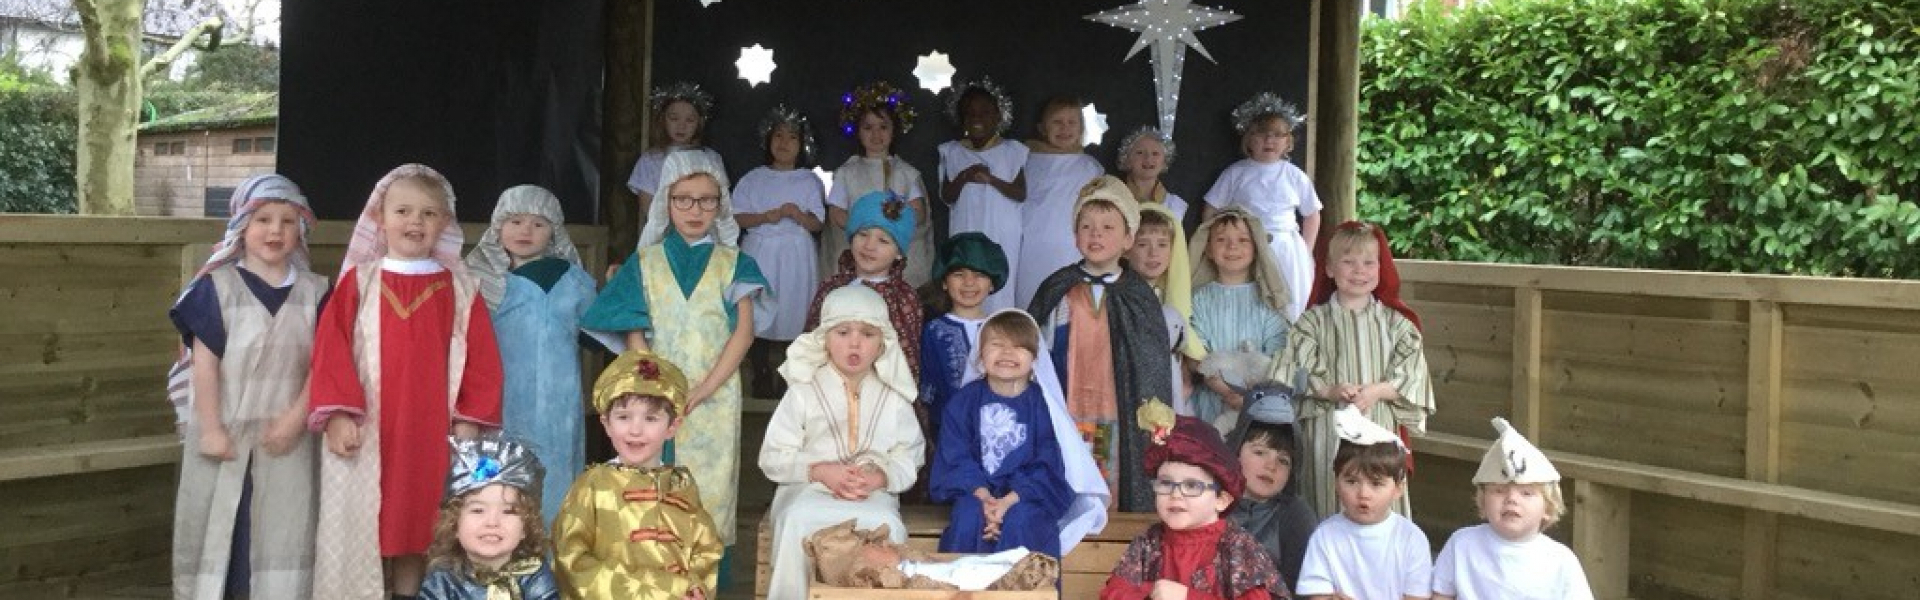 Nativity Reception